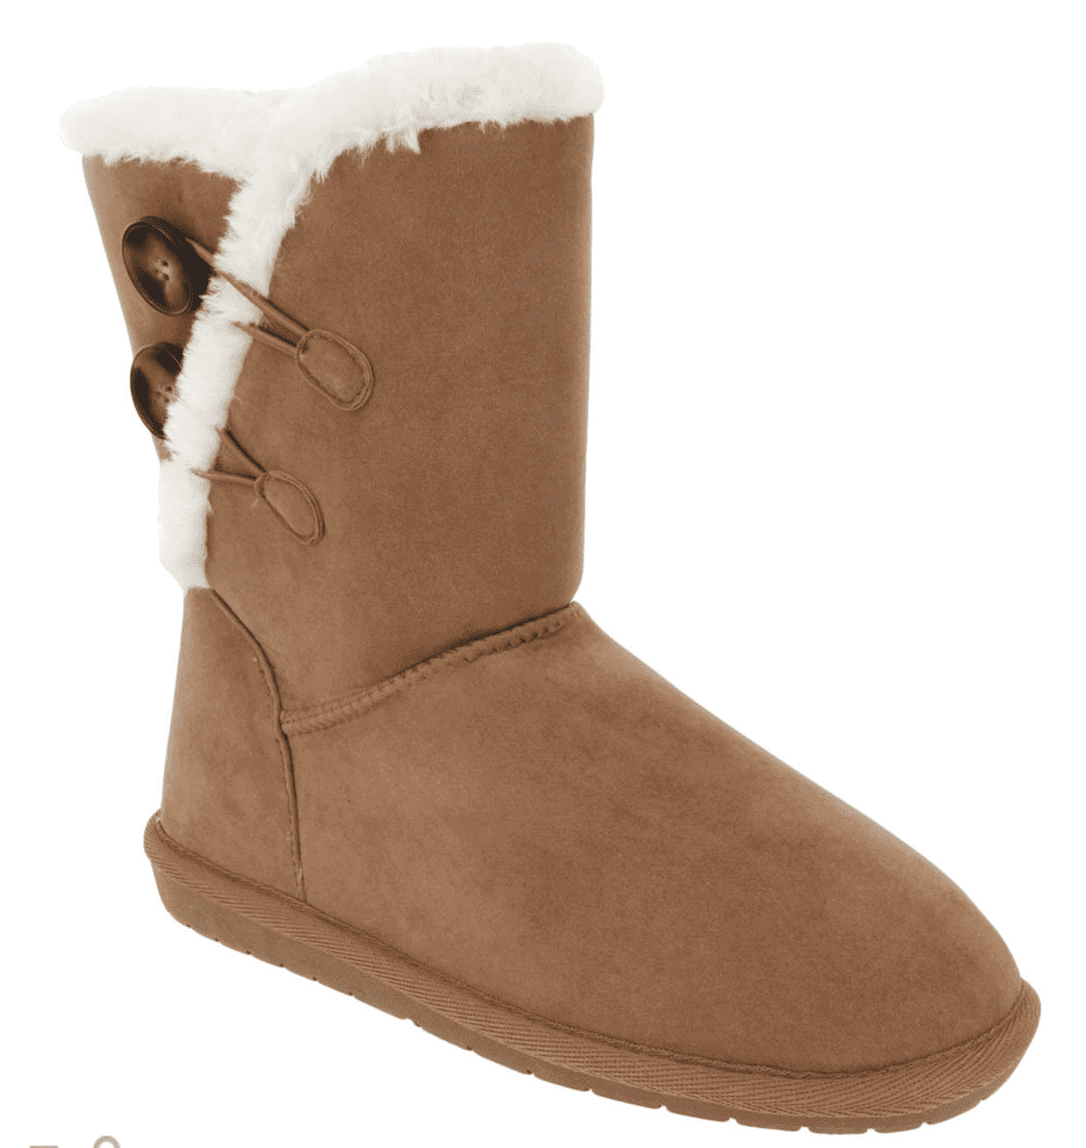 JCPenney Winter Boots sale